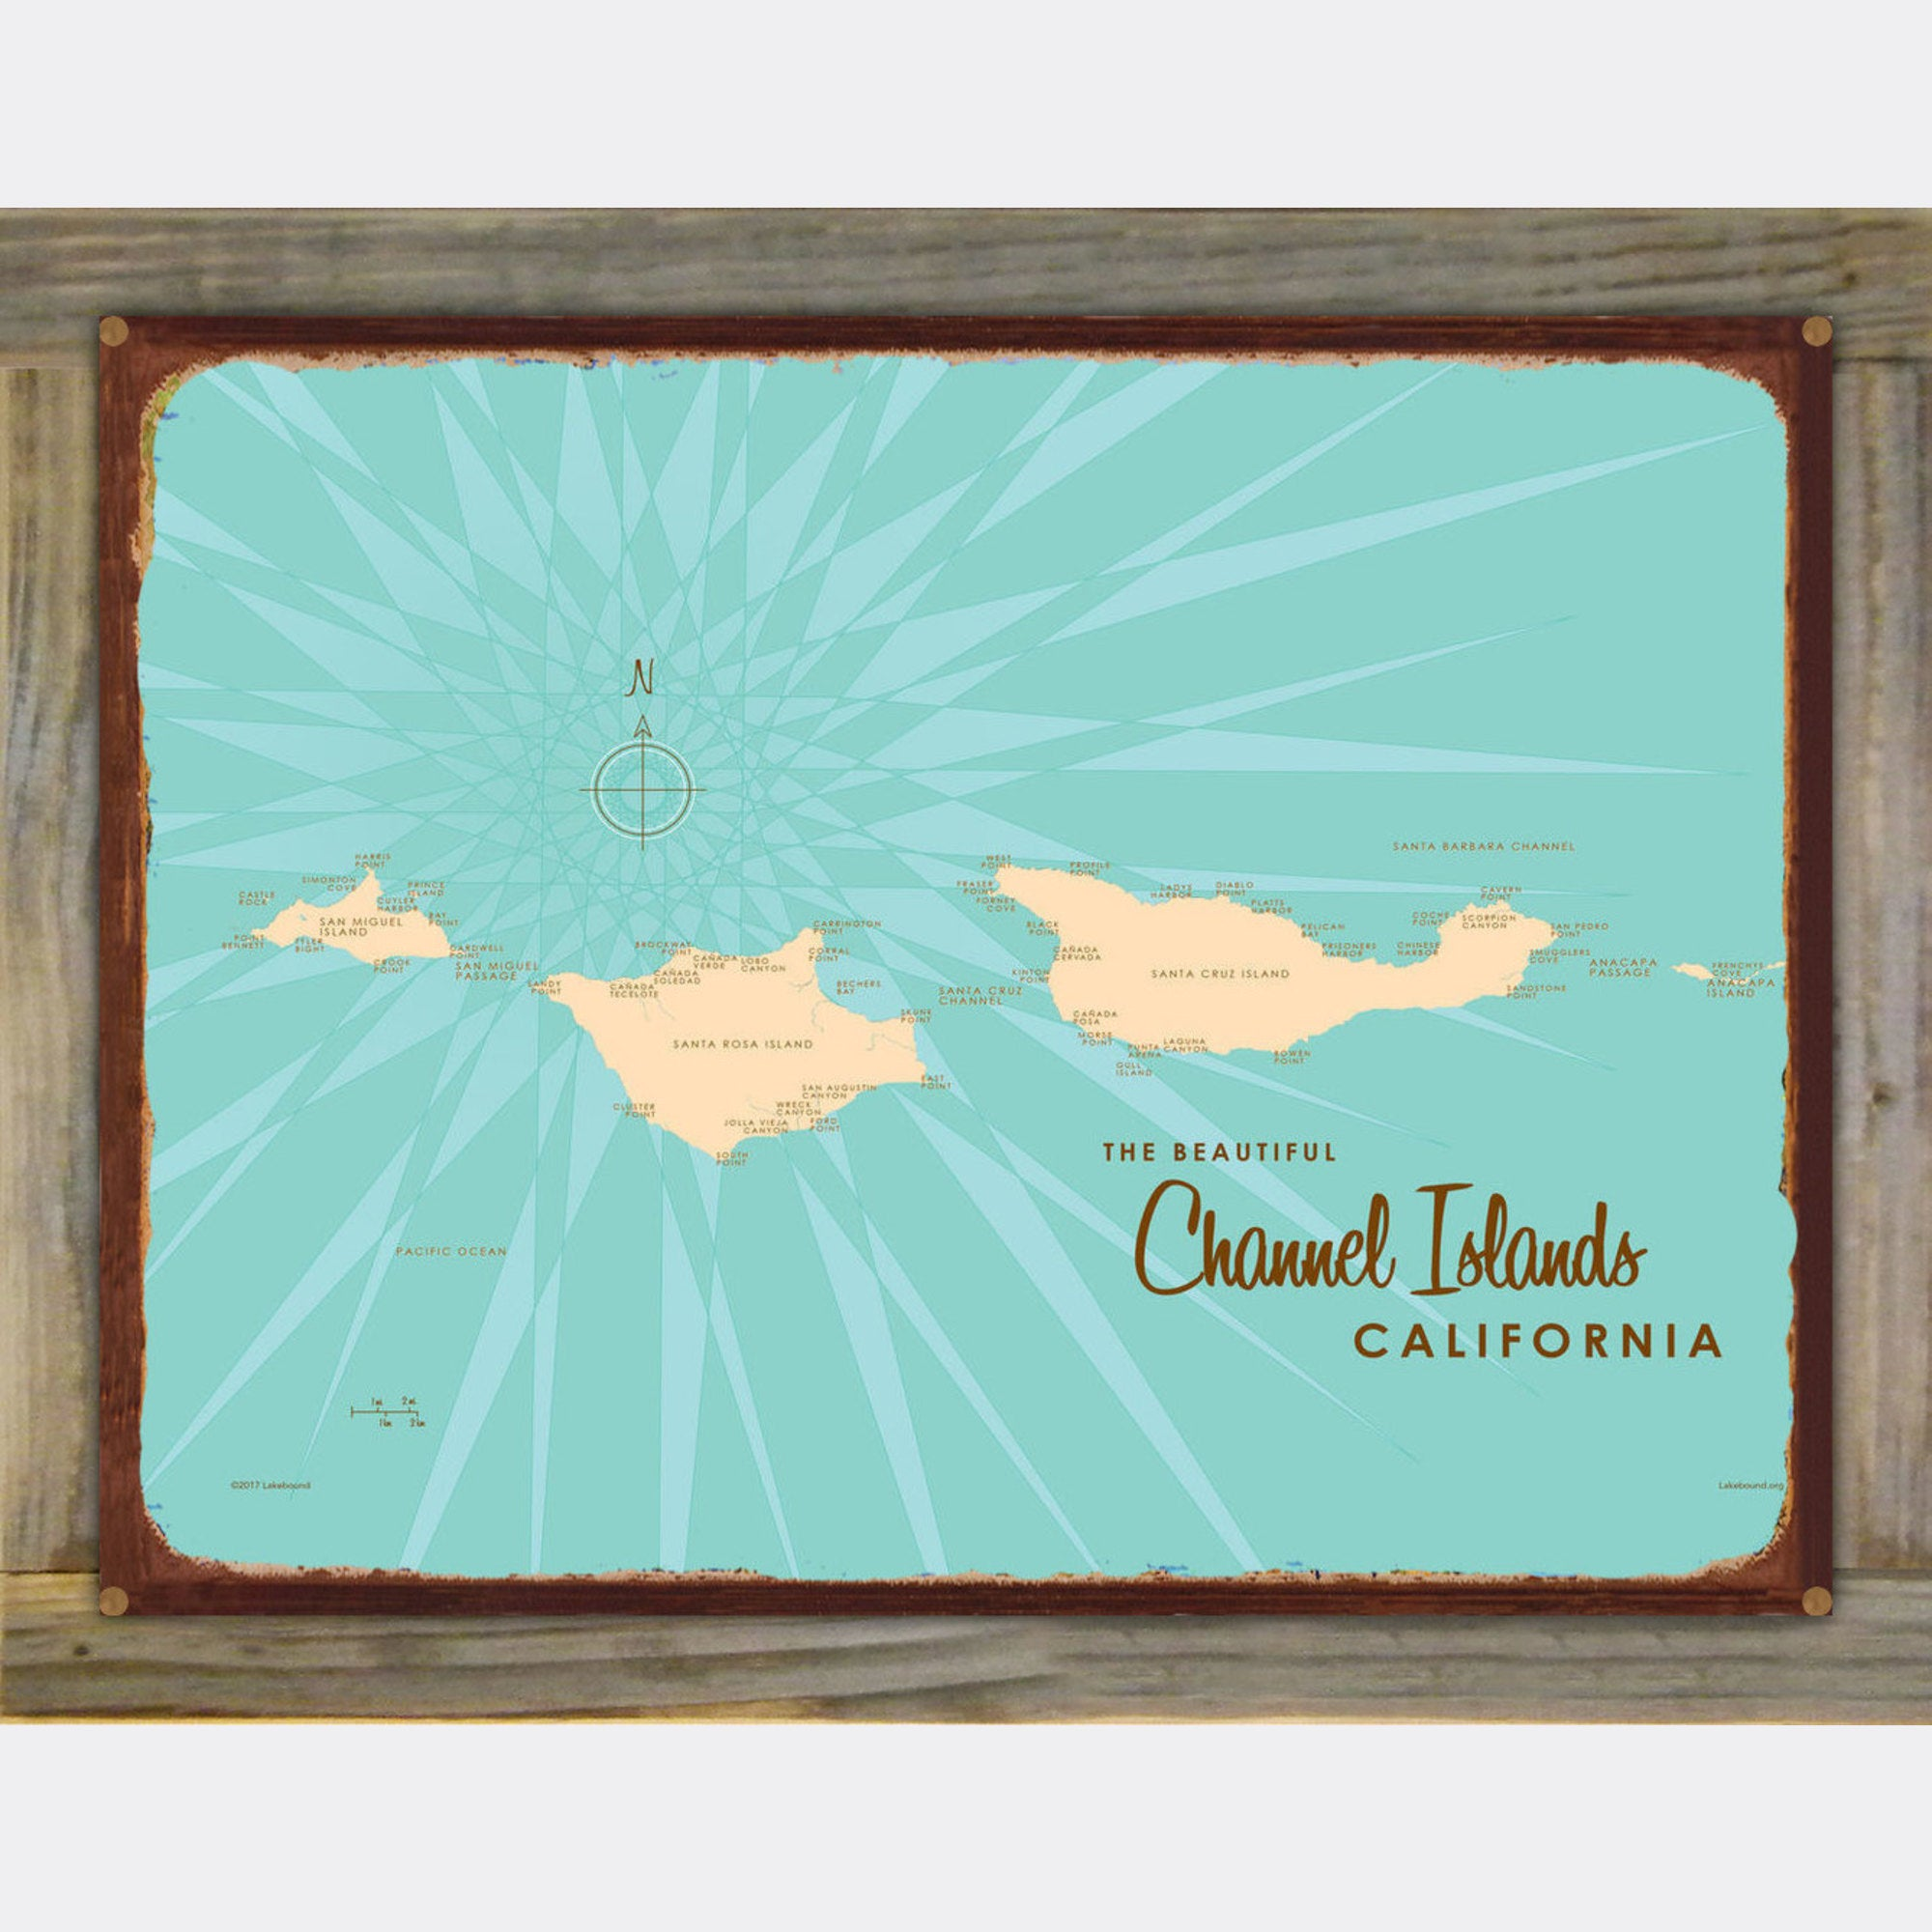 Channel Islands California, Wood-Mounted Rustic Metal Sign Map Art